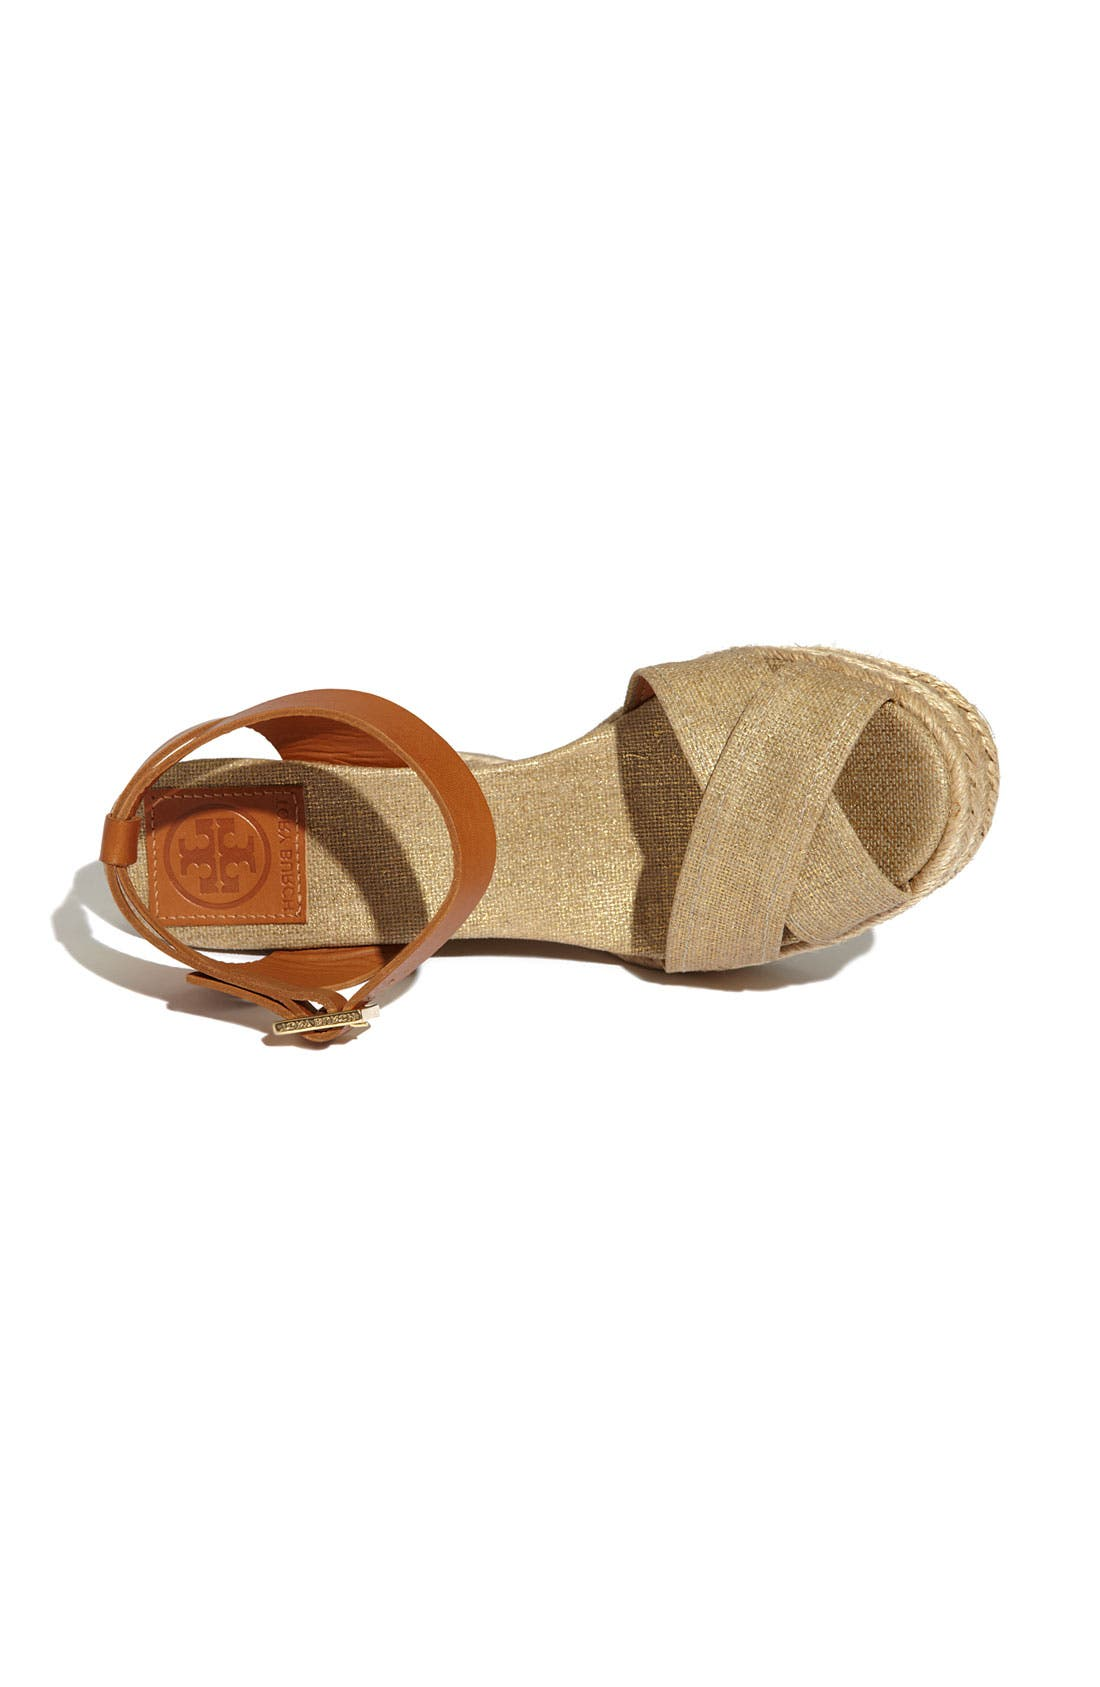 Alternate Image 3  - Tory Burch Criss Cross Sandal